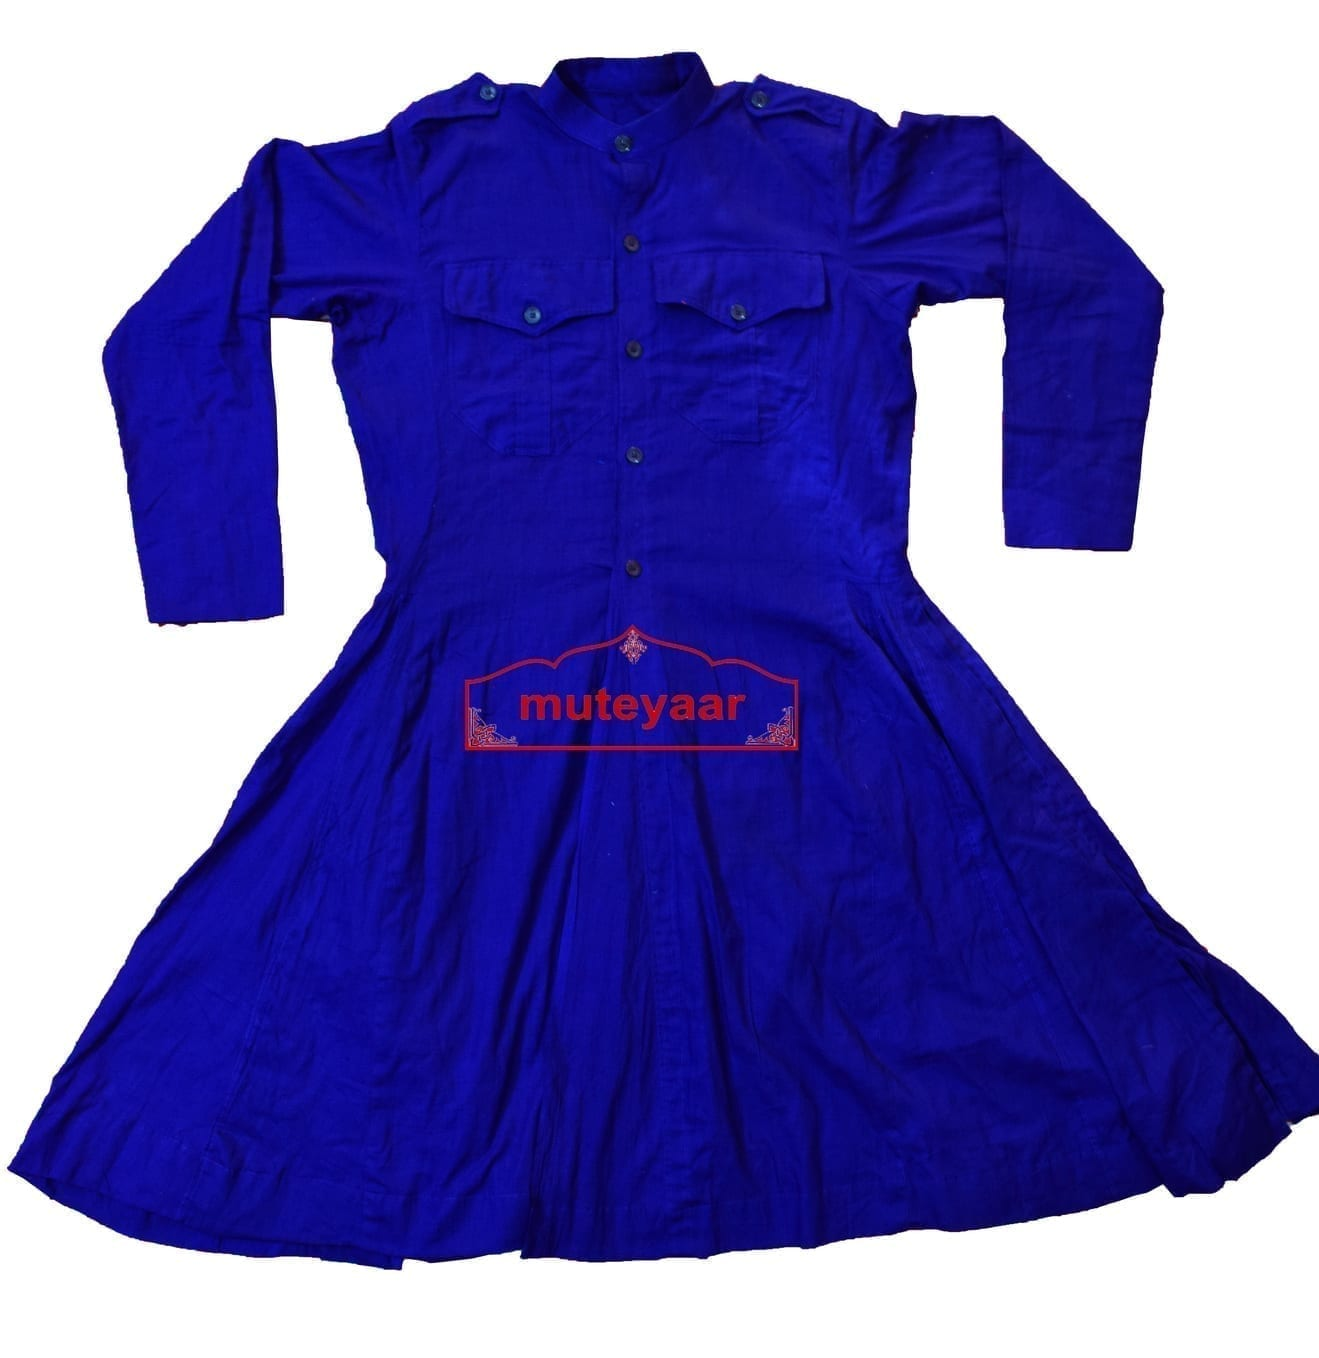 Blue Sikh Bana Chola for Nihang Singh - All sizes available Custom Stitching 1